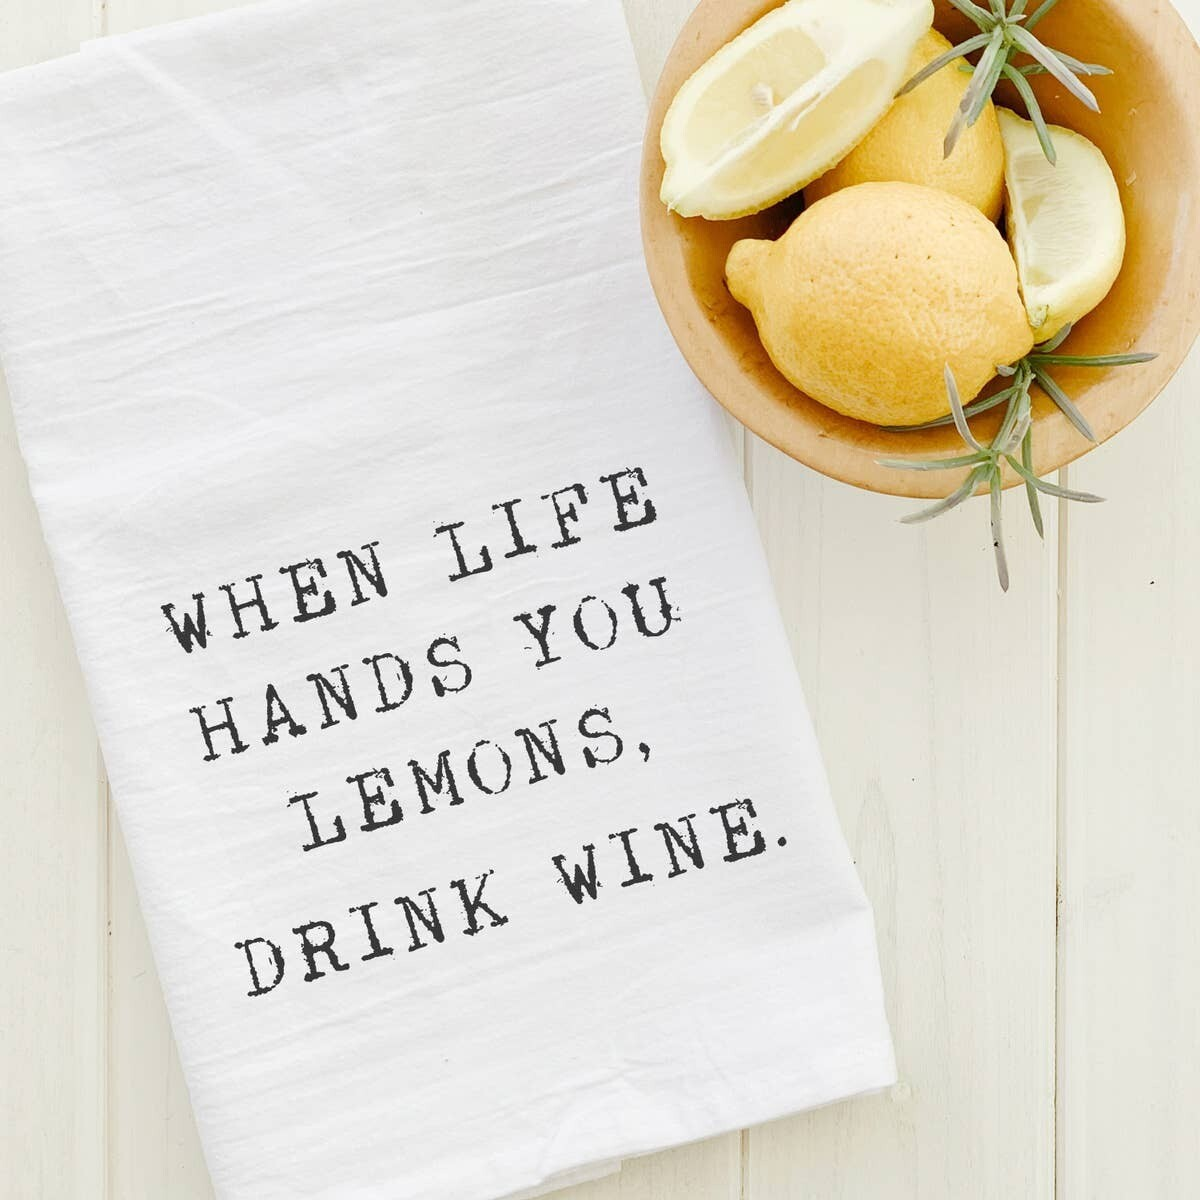 When Life Hands You Lemons, Drink Wine - Cotton Tea Towel